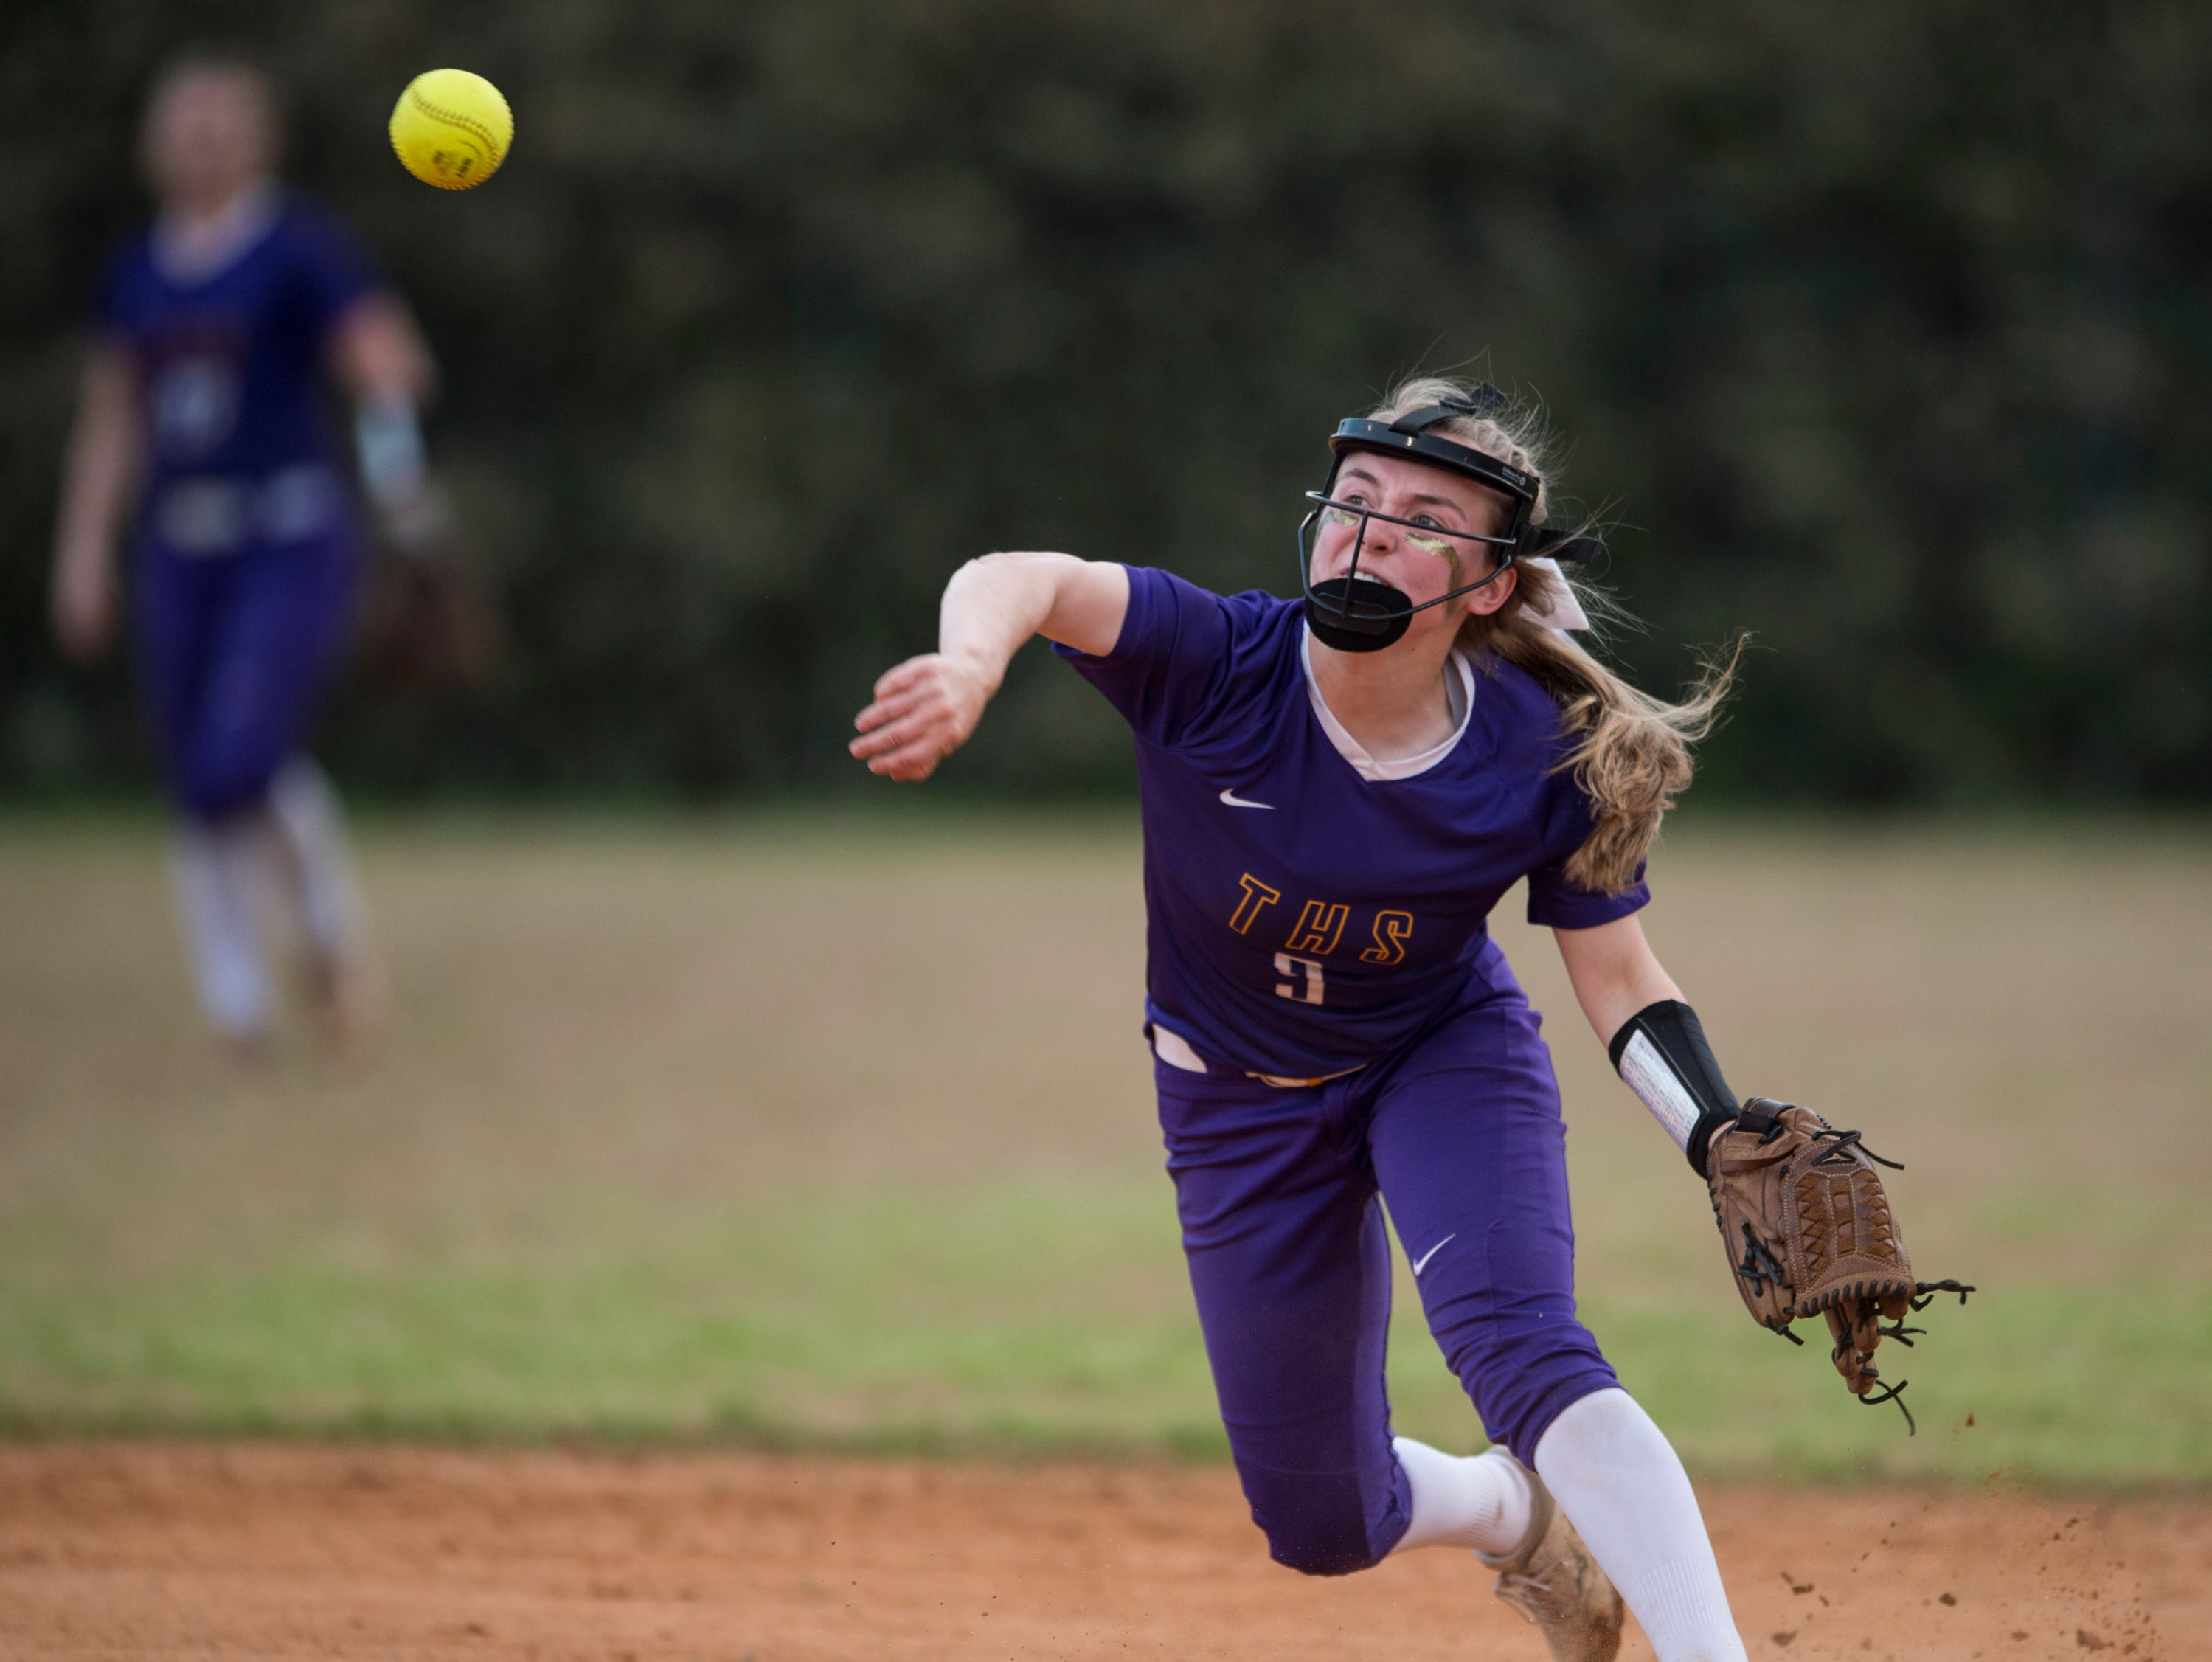 Tallassee's Alivia Haynes (9) throws the ball to first base at Thompson Park in Montgomery, Ala., on Thursday, March 14, 2019. Tallassee defeated Brew Tech 7-0.